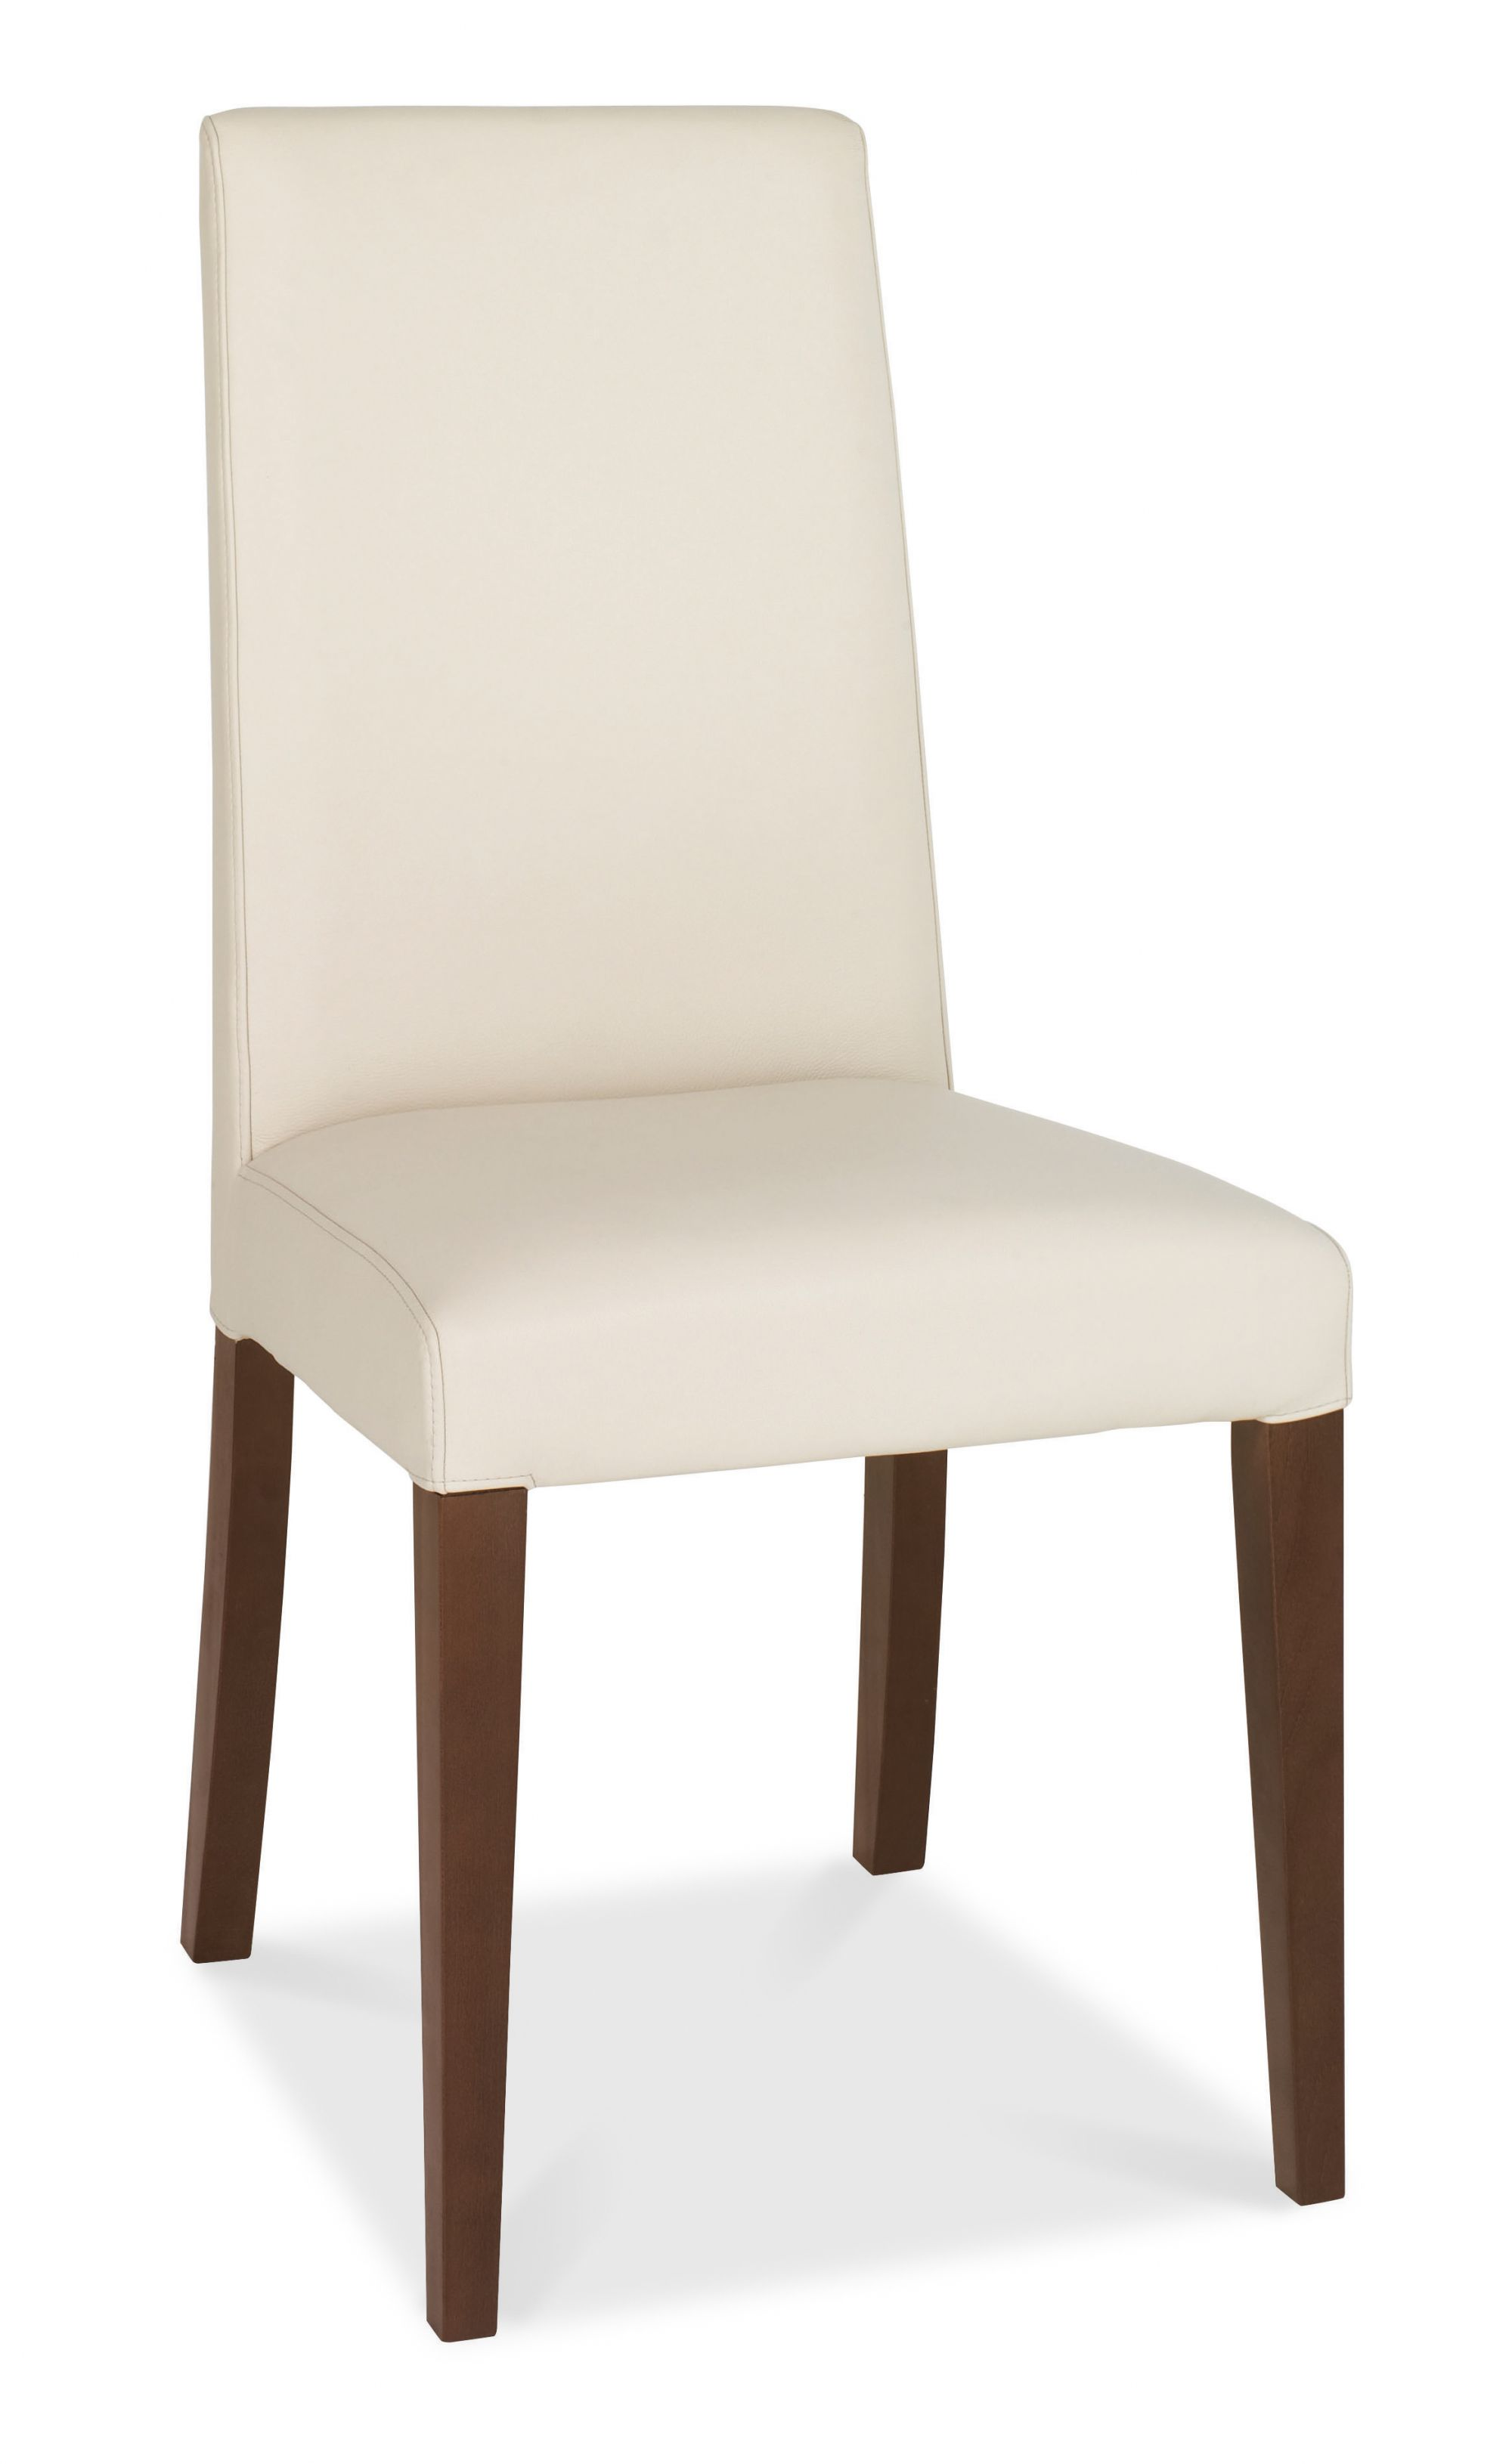 https://www.firstfurniture.co.uk/pub/media/catalog/product/6/9/6900-09PT-IV-C1.jpg